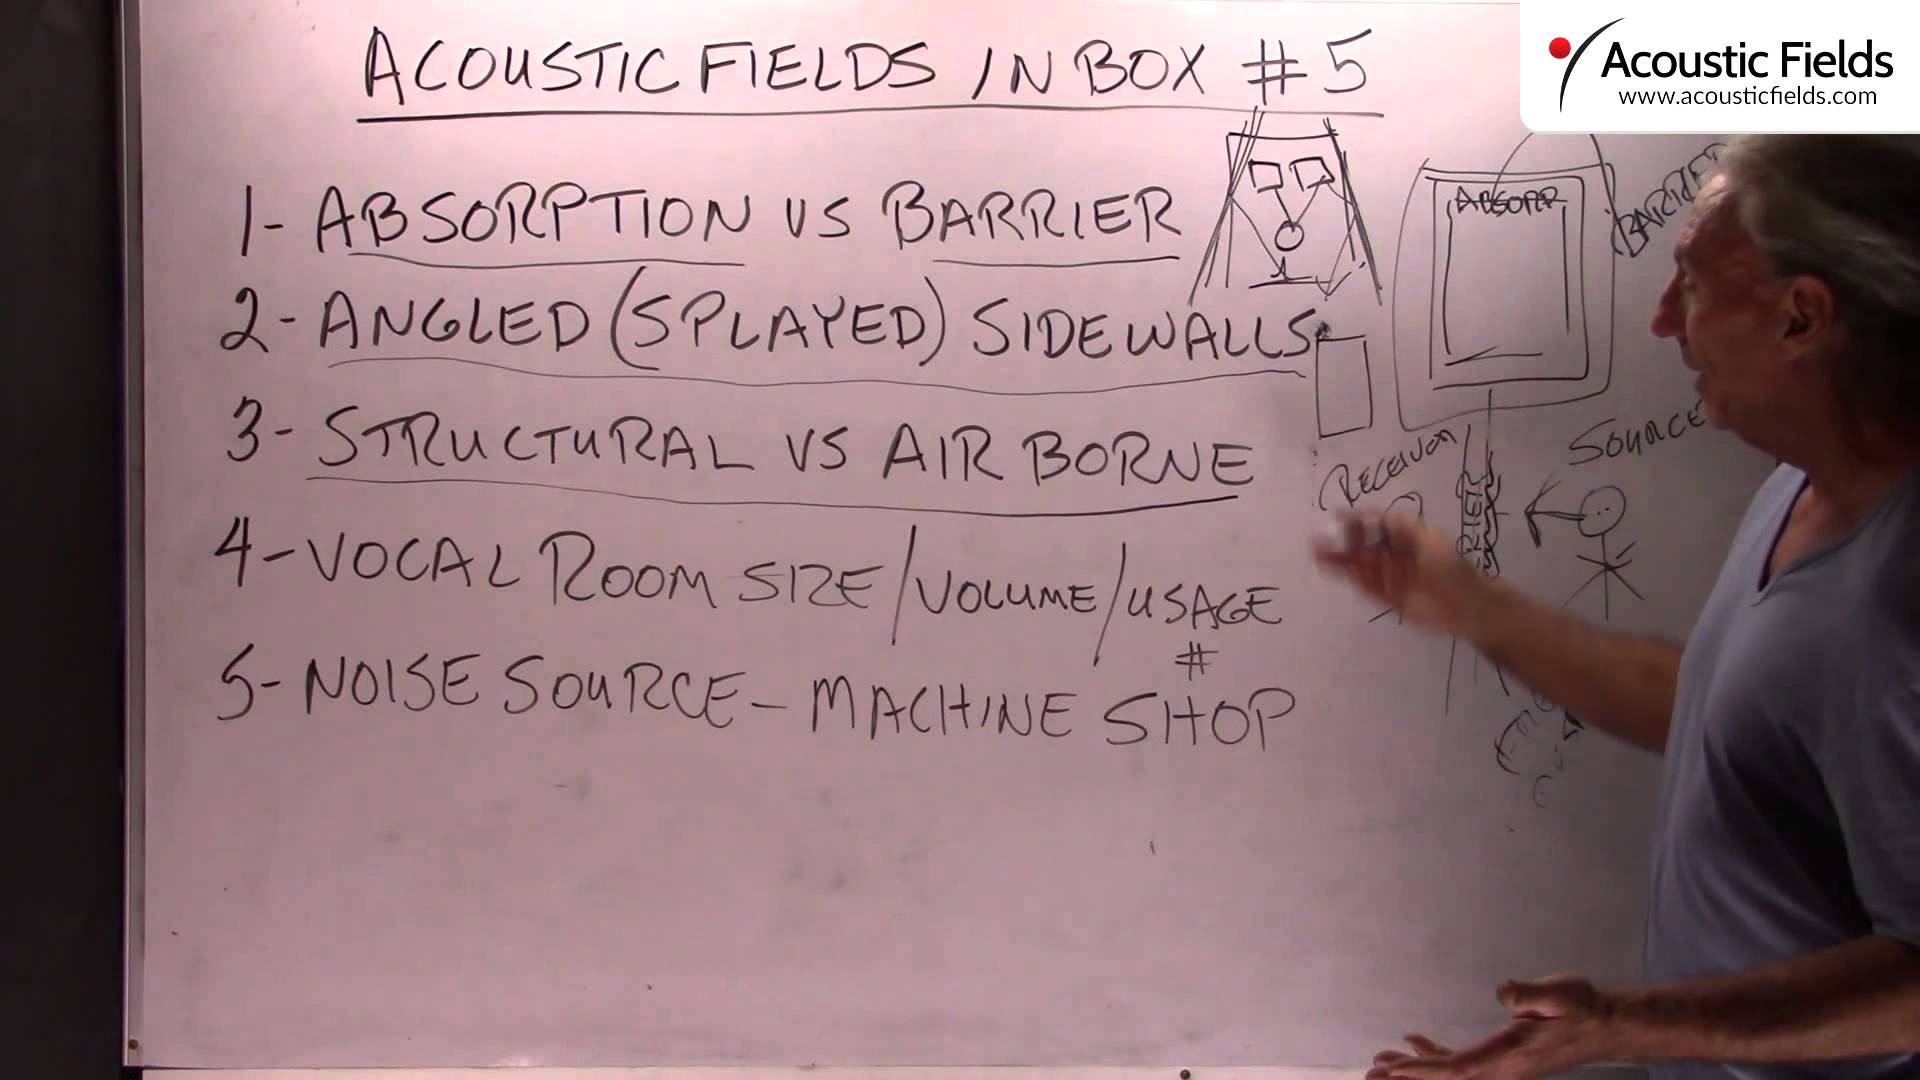 Acoustic Fields Inbox #5